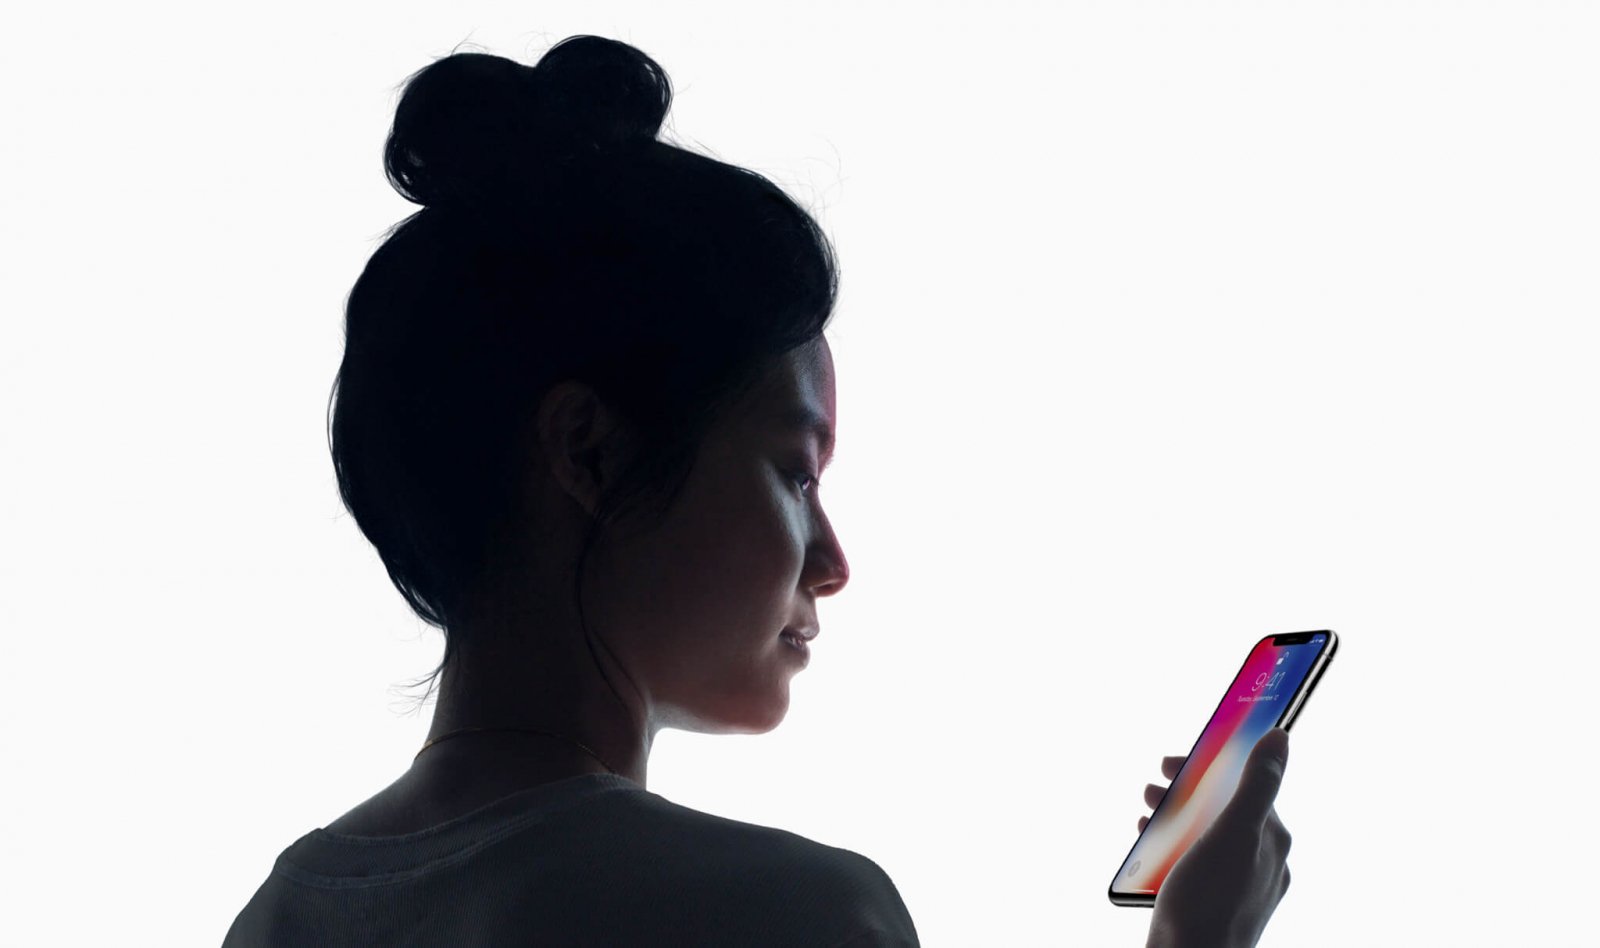 iPhone X pushes Apple Pay one step further with Face ID